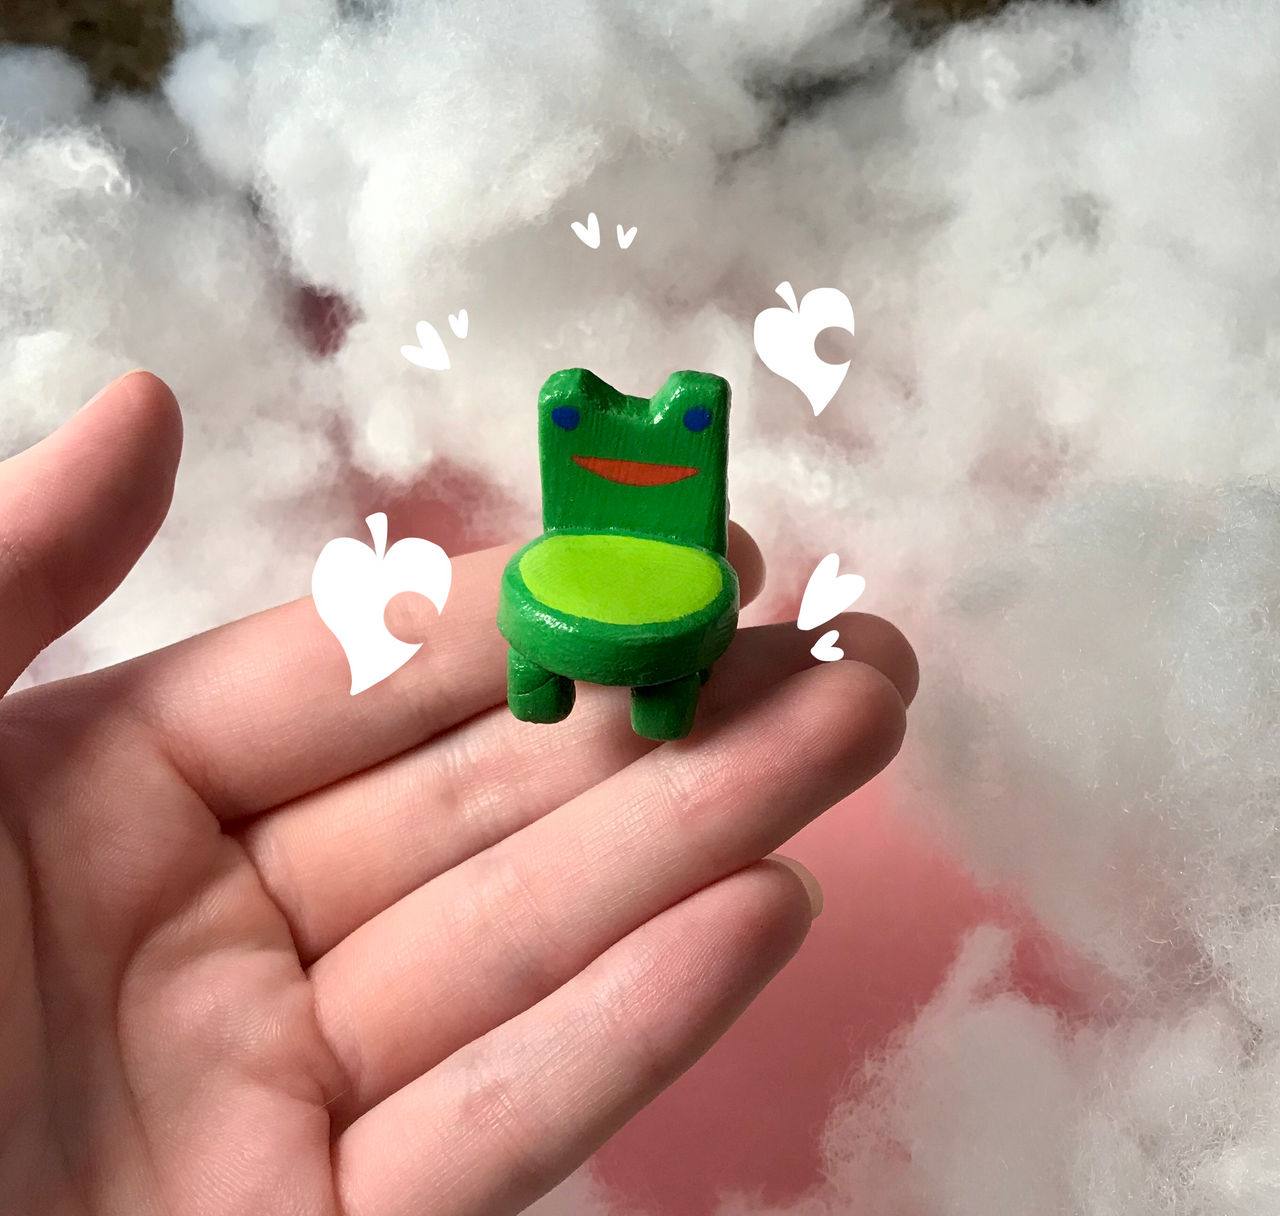 Froggy Chair Clay Figure By Crumpitcroc On Deviantart